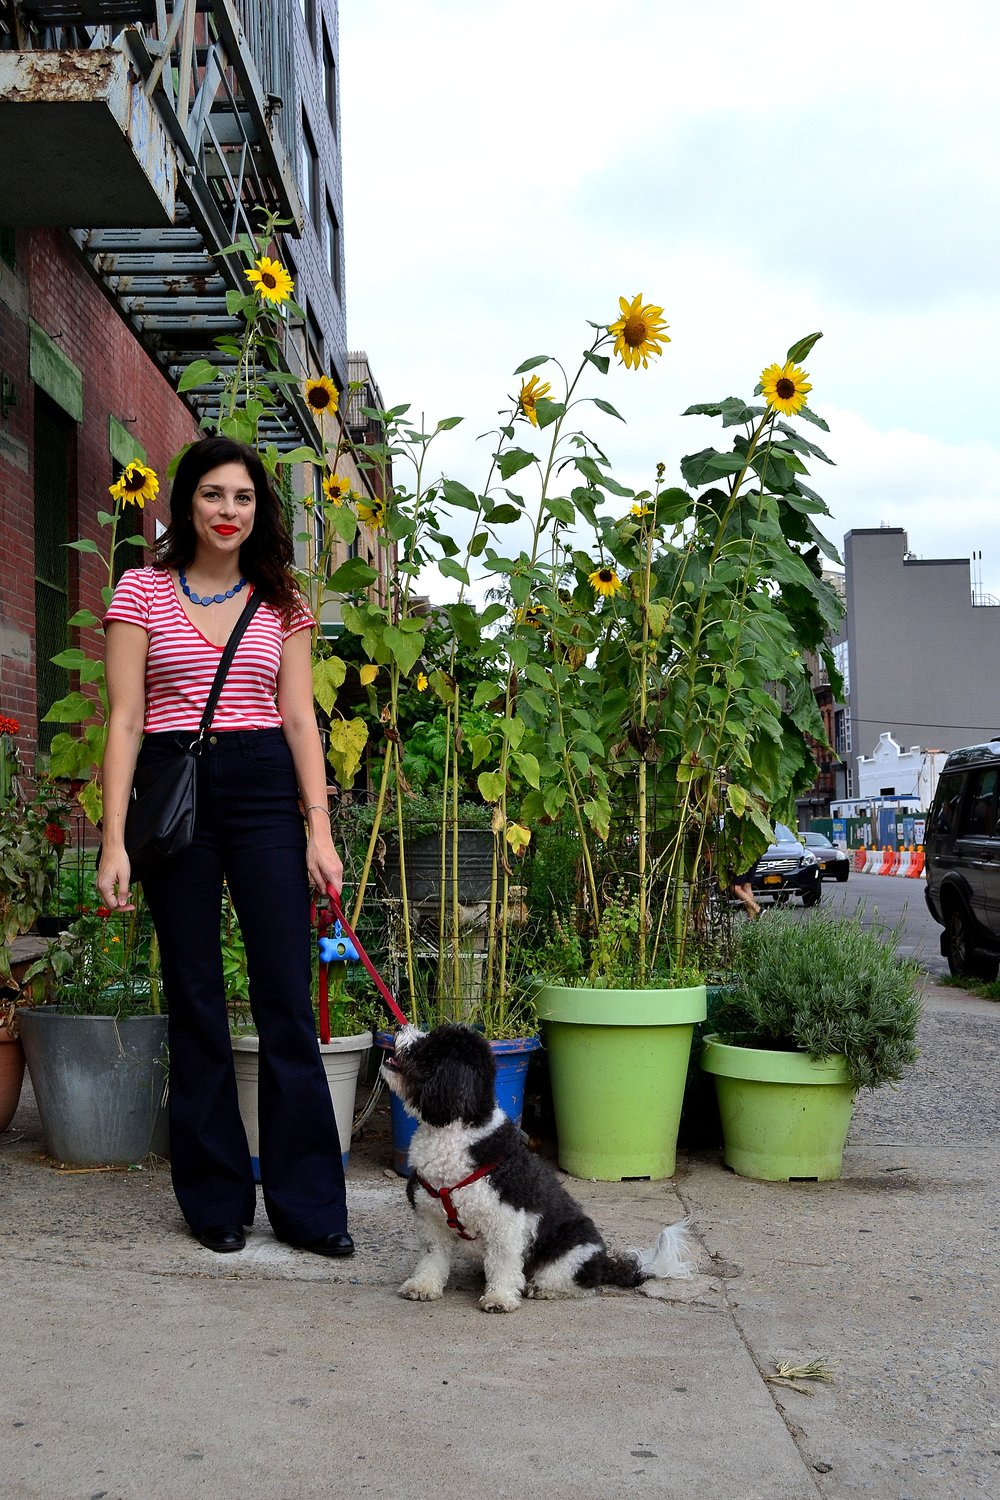 jeans: Highline Collective /  tee: Free People /  crossbody bag: Brooklyn Industries / booties: Zara/ necklace: Forever 21